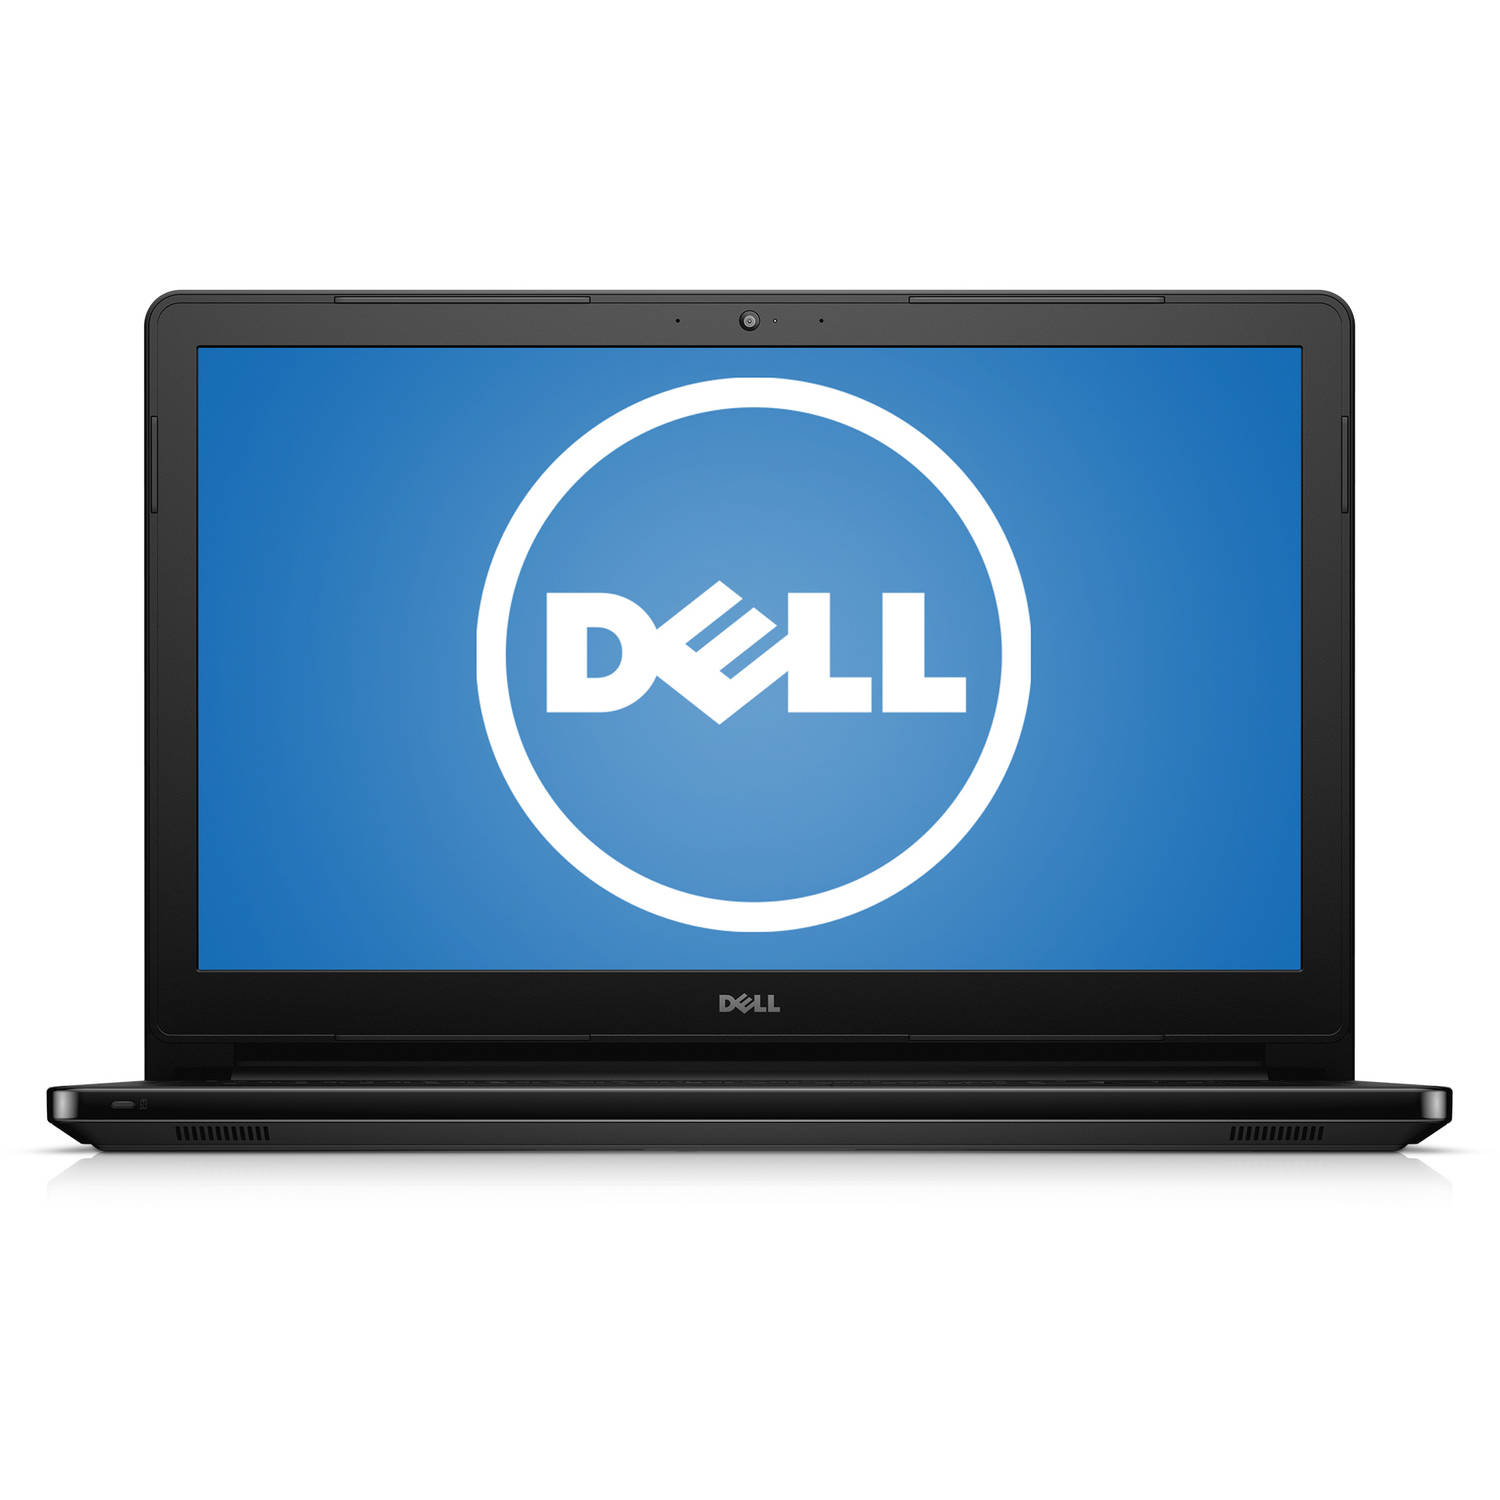 """Dell Black 15.6"""" Inspiron i5551-1667BLK Laptop PC with Intel Pentium N3540 Processor, 4GB Memory, 500GB Hard Drive and Windows 8.1  (Free Windows 10 Upgrade before July 29, 2016)"""